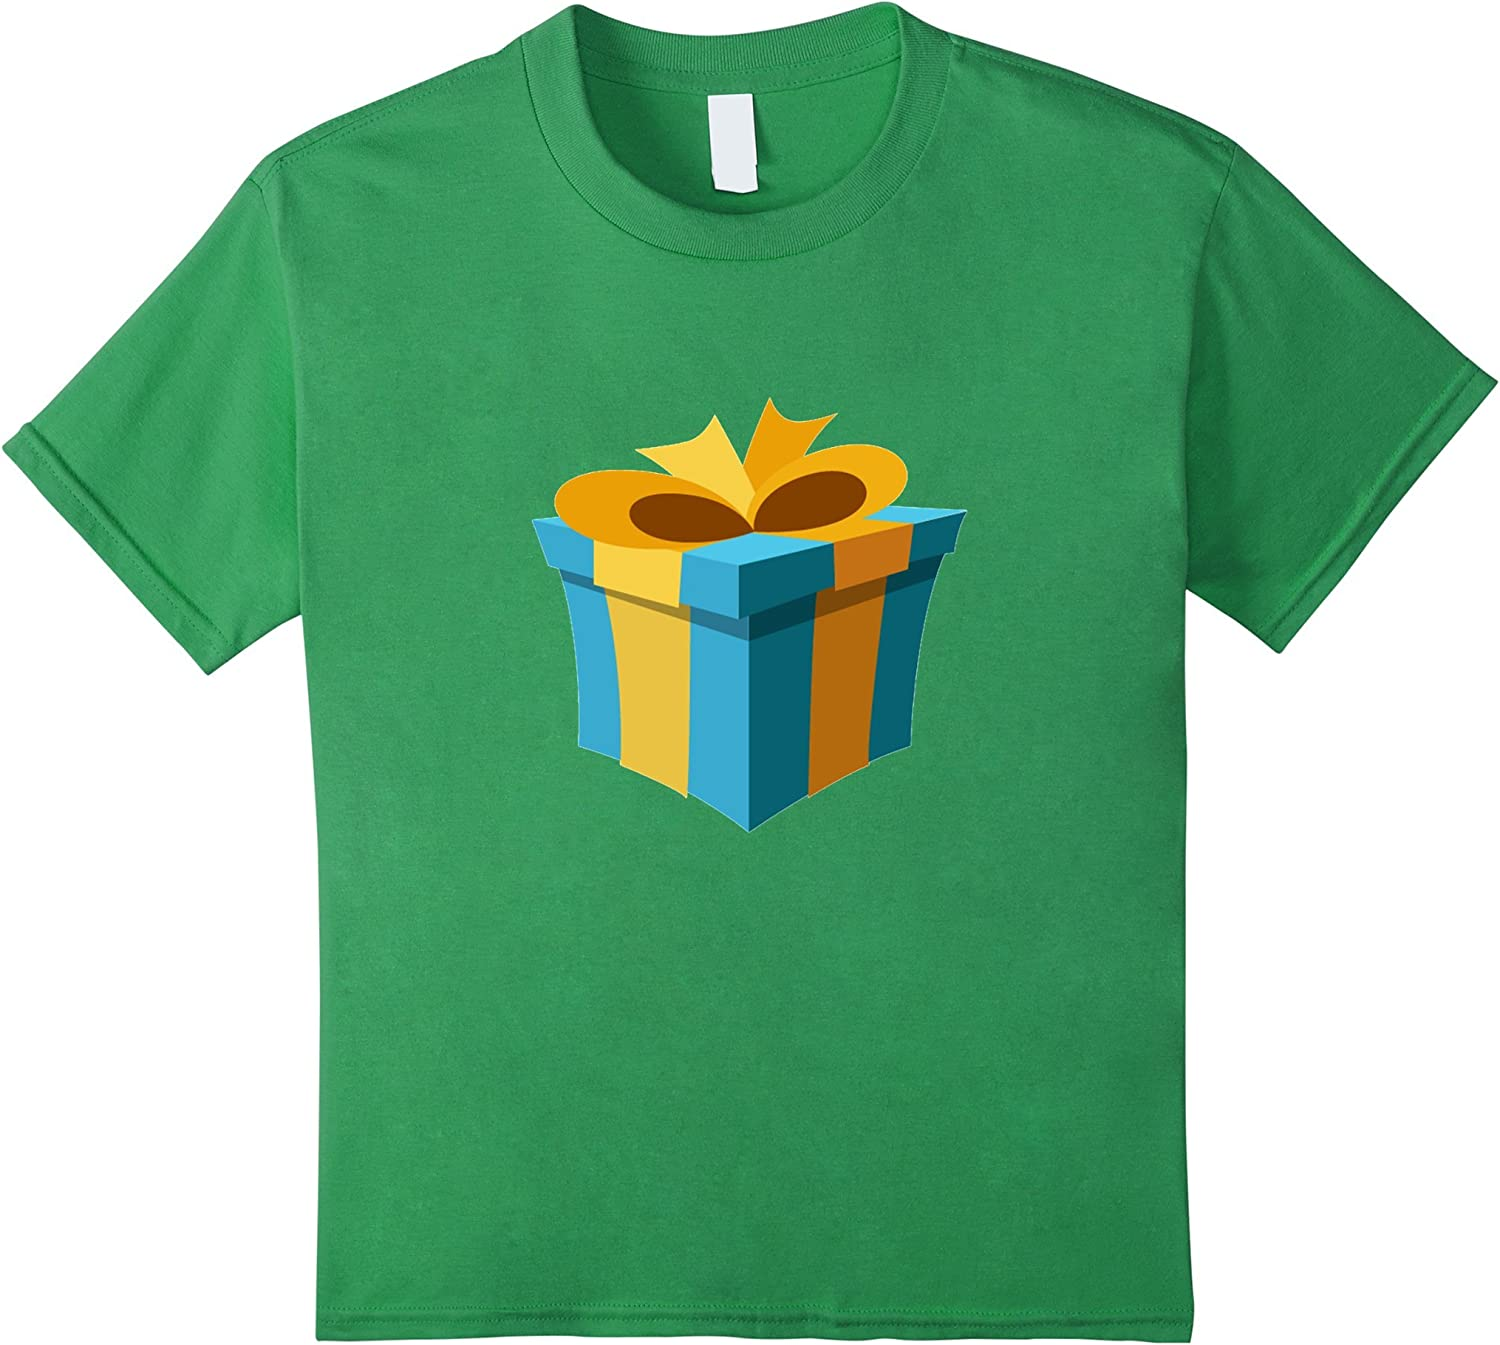 Kids Present Emoji T Shirt Gift Wrapped Bow In A Box Birthday 6 Grass Amazon Ca Clothing Accessories Shop for the perfect emoji gift from our wide selection of designs, or create your own personalized gifts. amazon ca